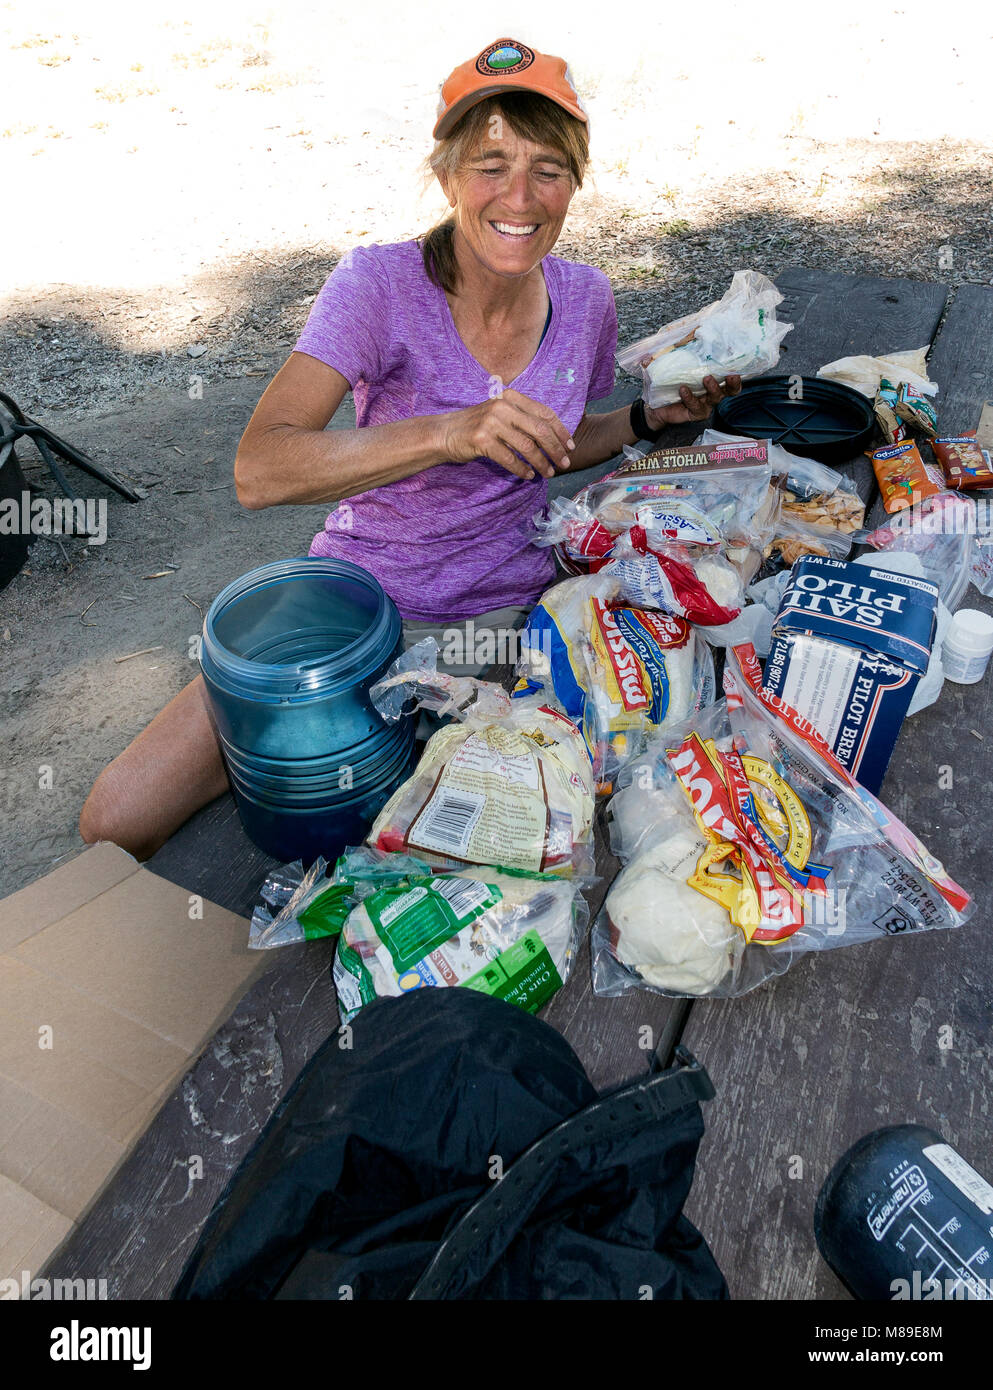 CA03358-00...CALIFORNIA - Food resuply along the John Muir Trail at Reds Meadows in Devils Post Pile National Monument - Stock Image